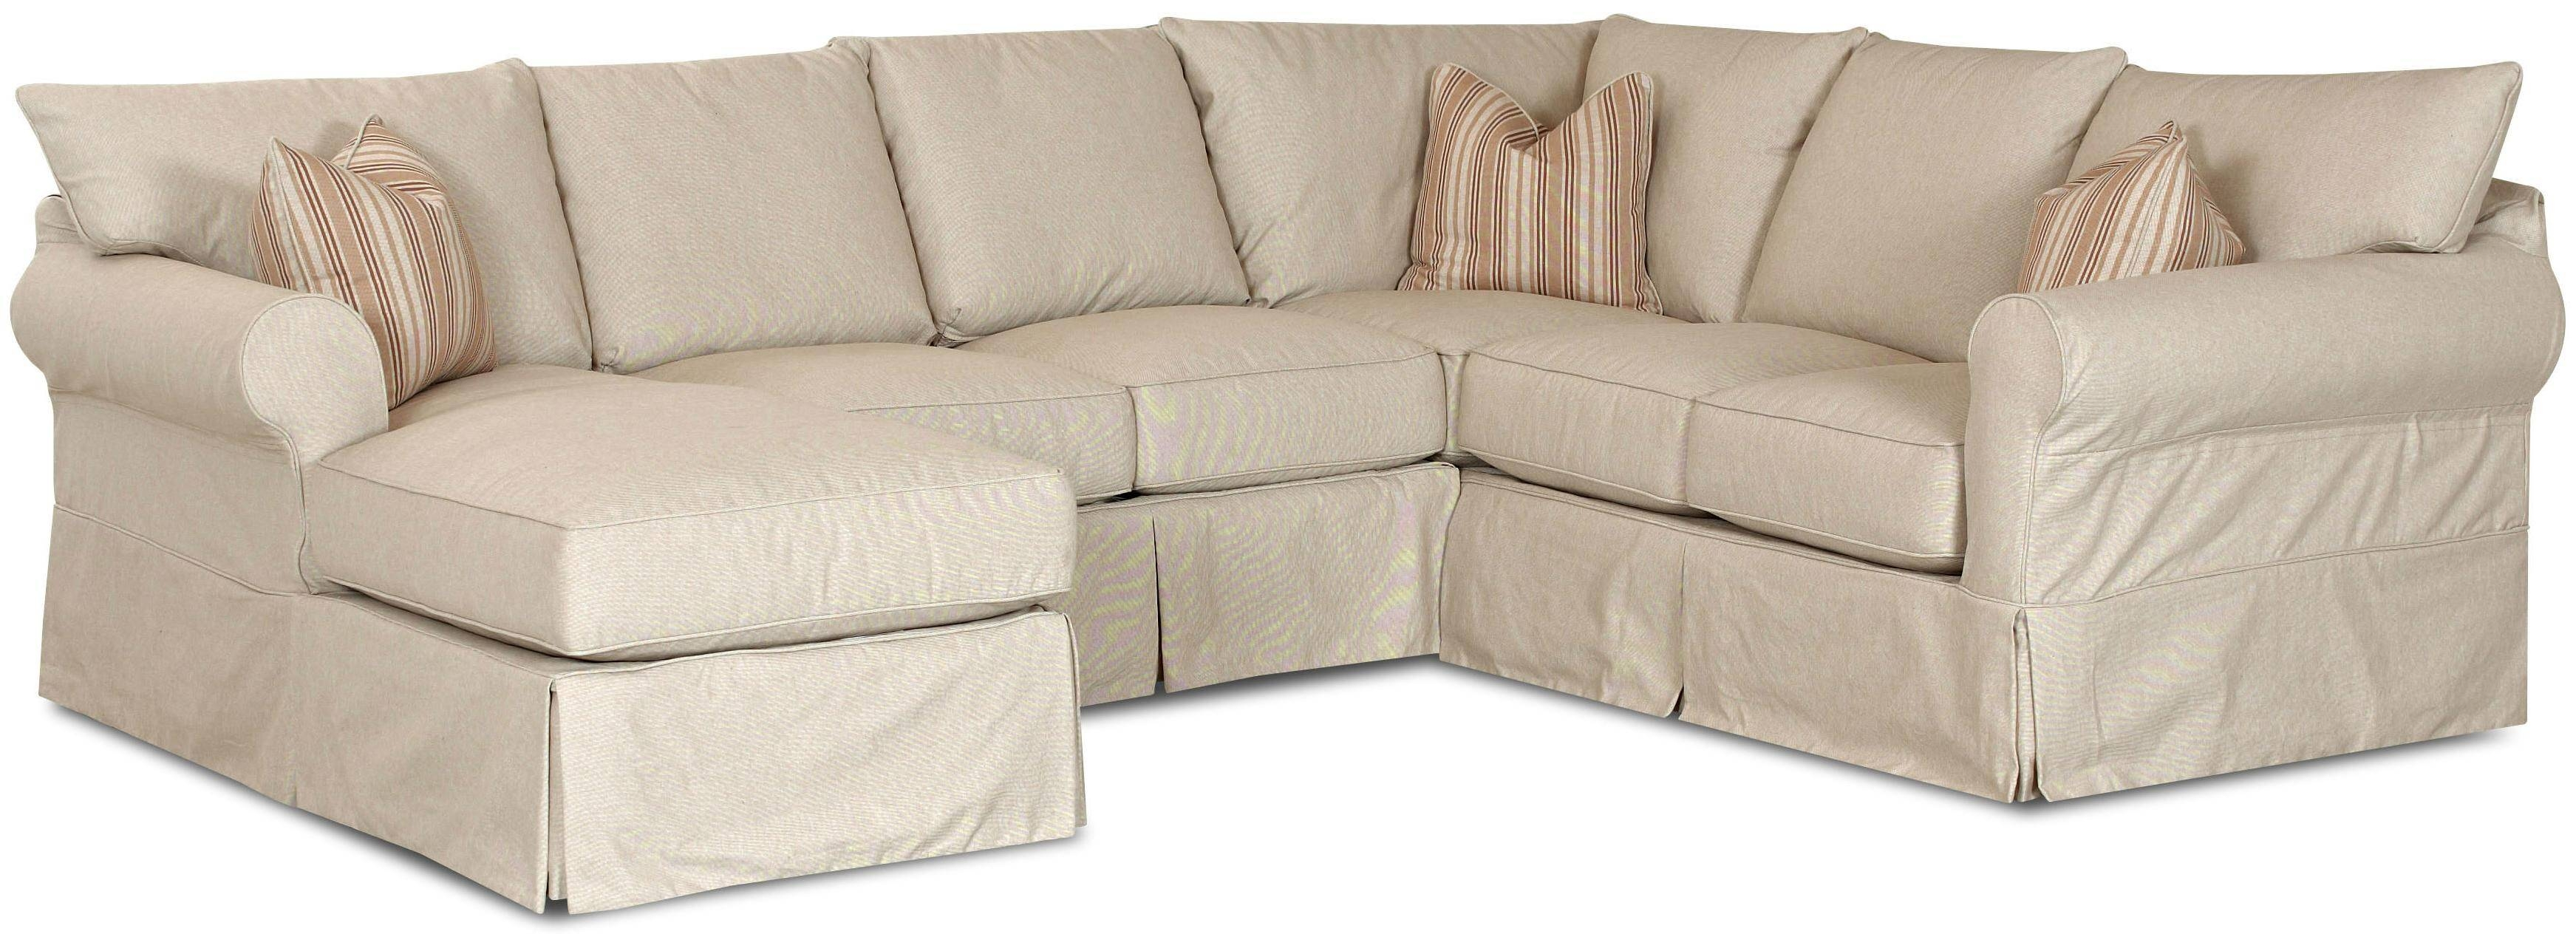 Inspirations: Interesting Furniture Sectional Sofa Slipcovers For with Sectional Sofa Covers (Image 13 of 25)